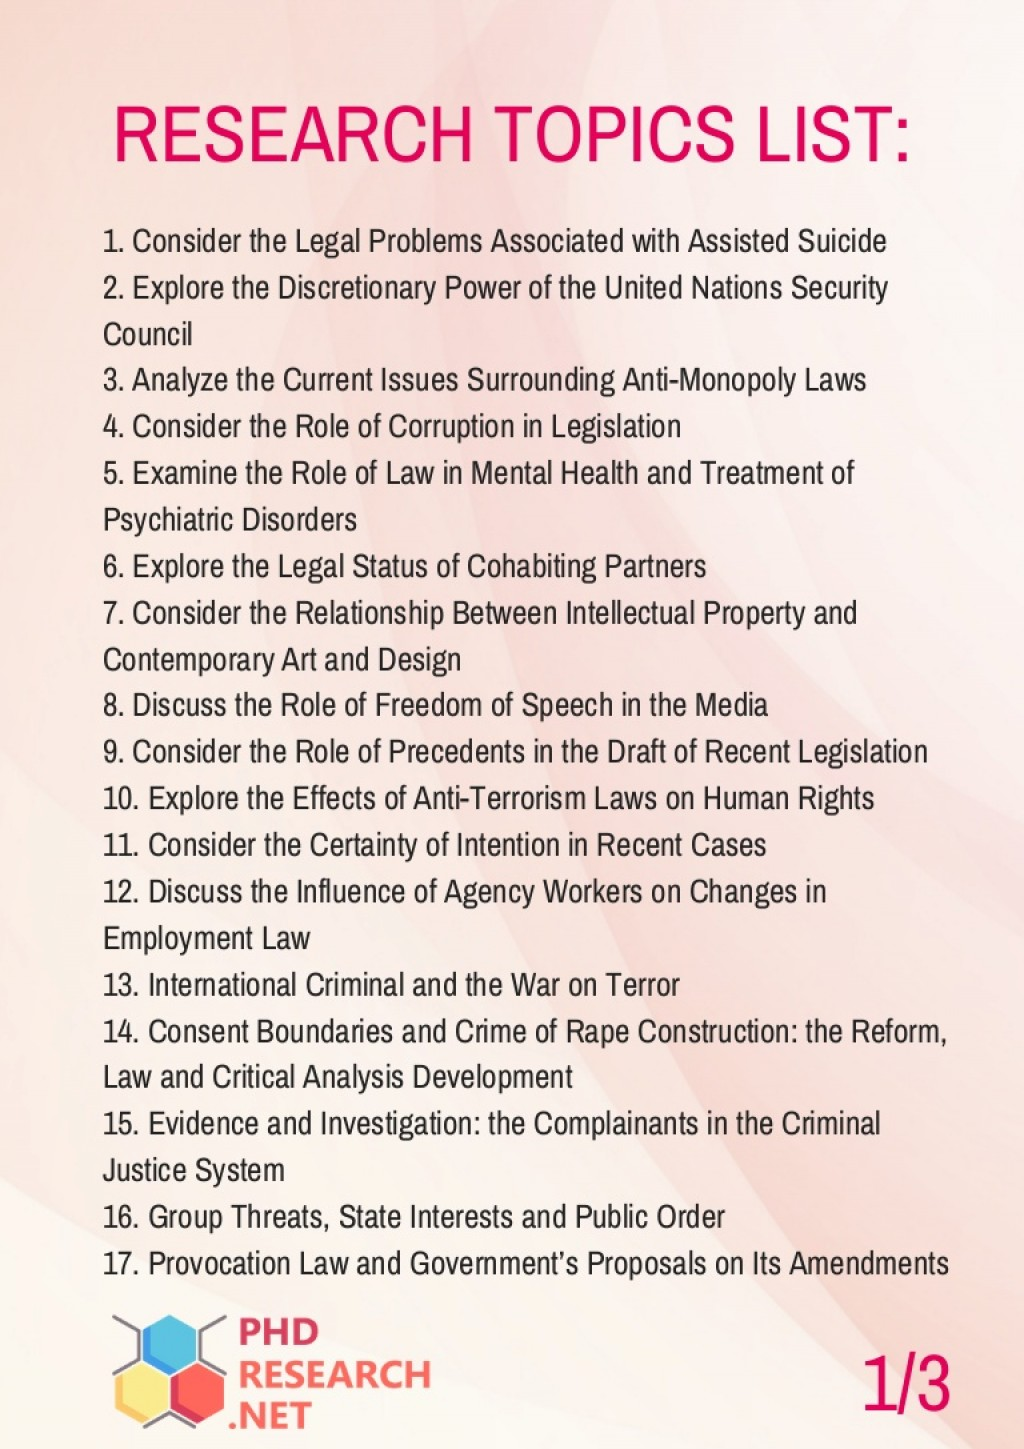 023 Criminal Justice Research Paper Topics For Phd In Law Thumbnail Fearsome 100 Large